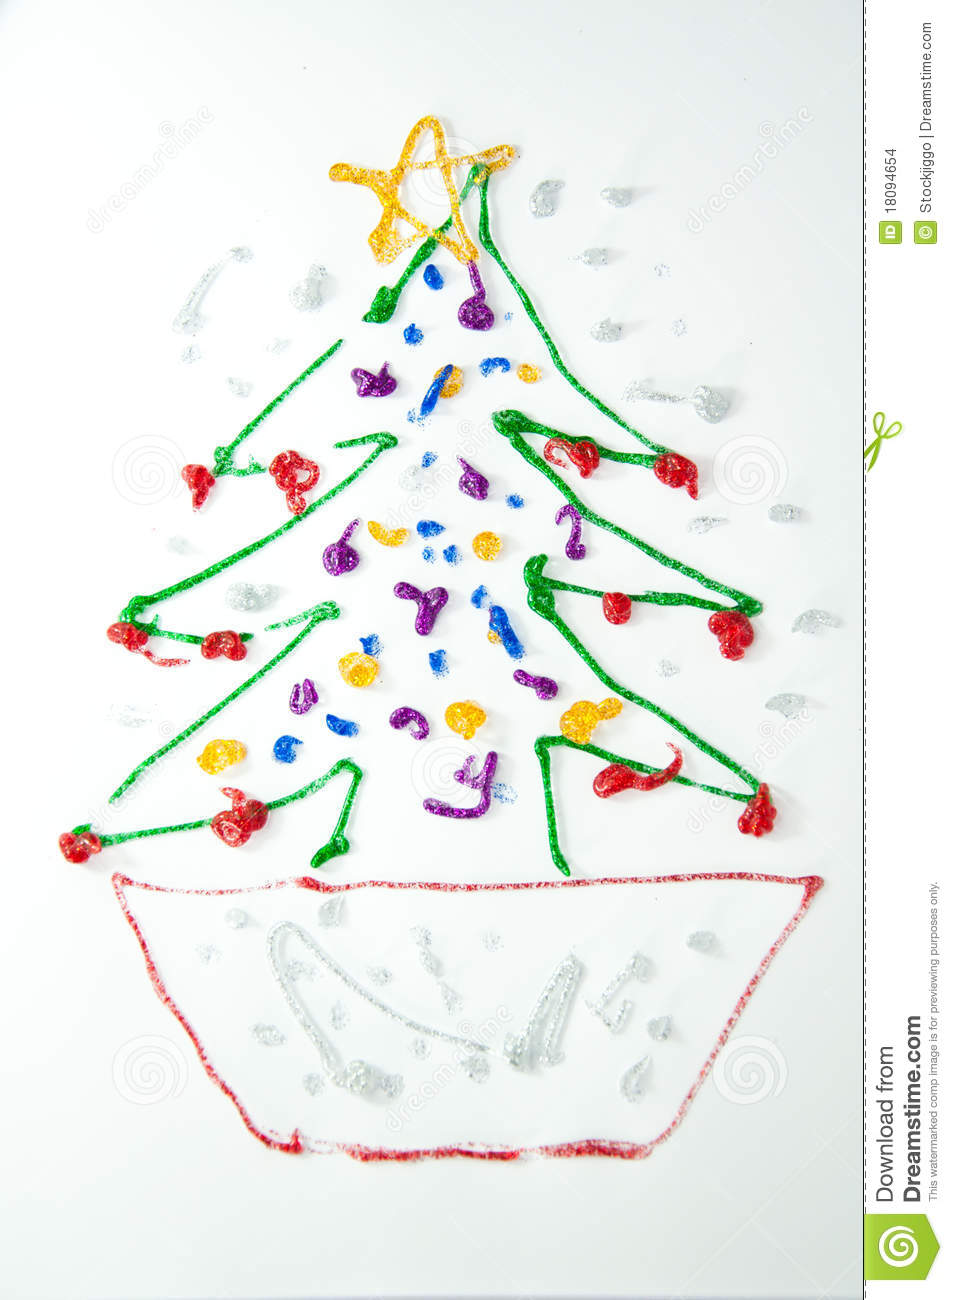 Uncategorized Christmas Kids Drawing christmas tree kid draw stock images image 18094654 christmas